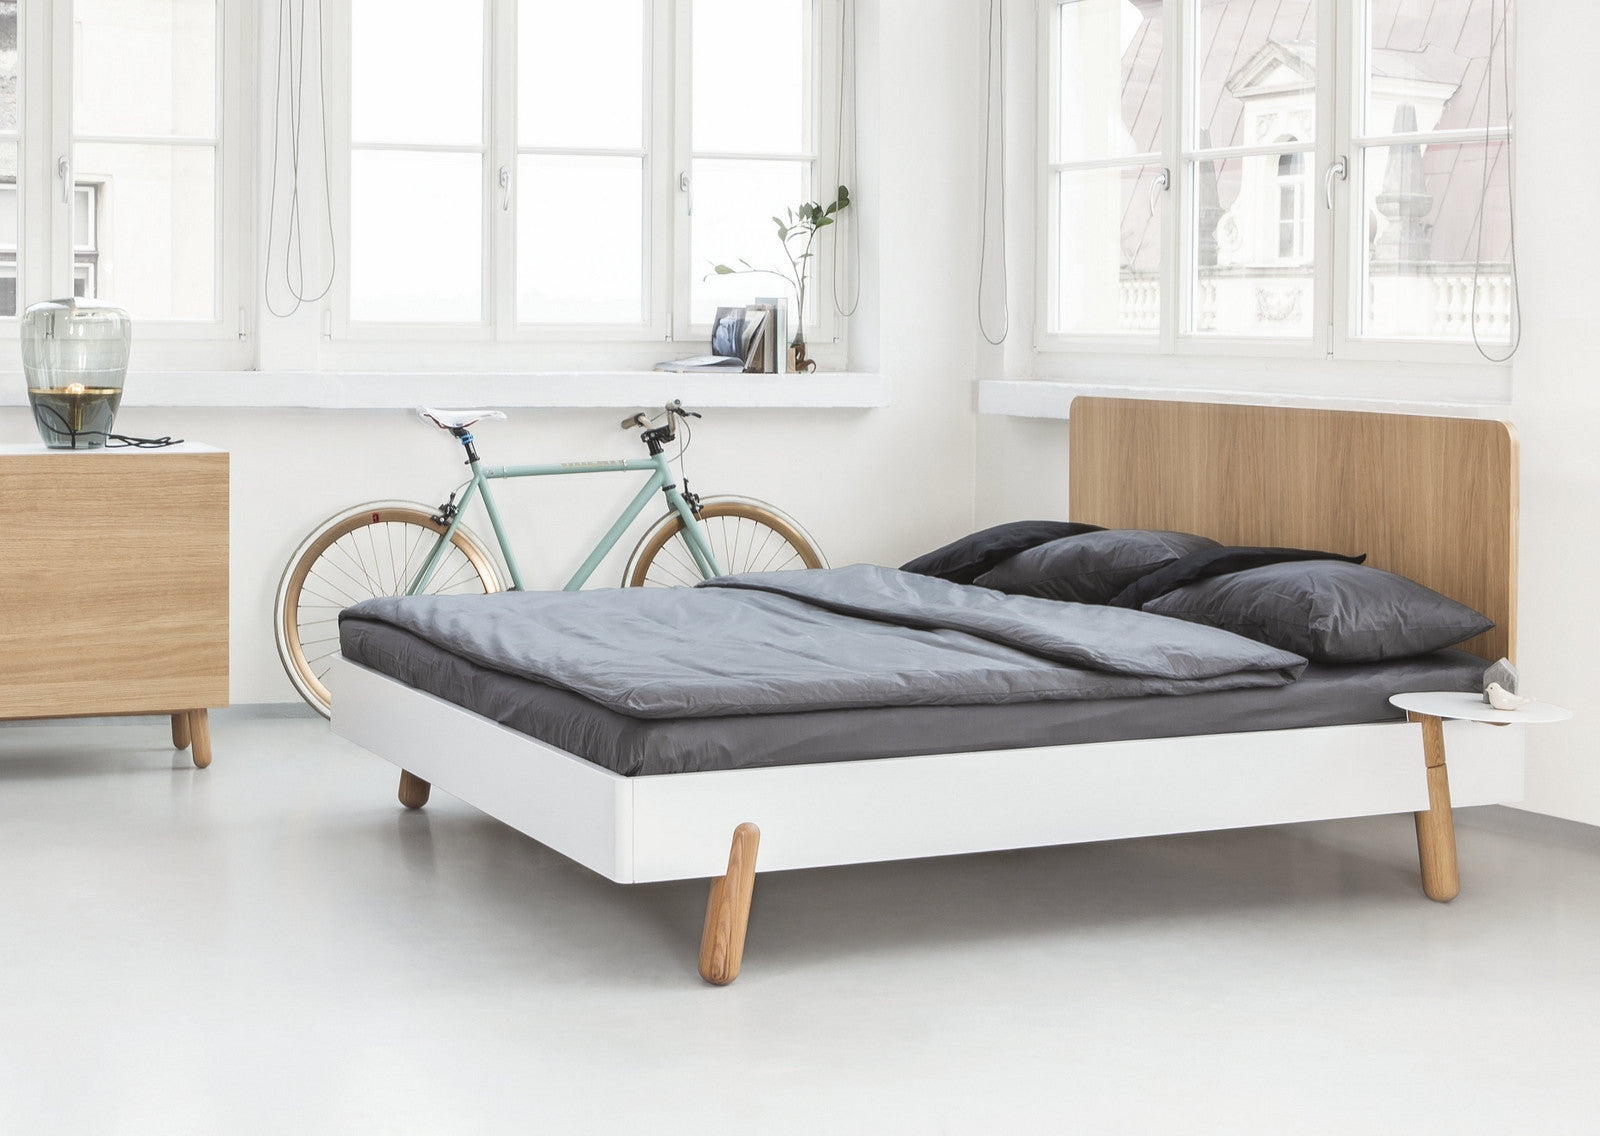 Mamma Bed - Incredible Design